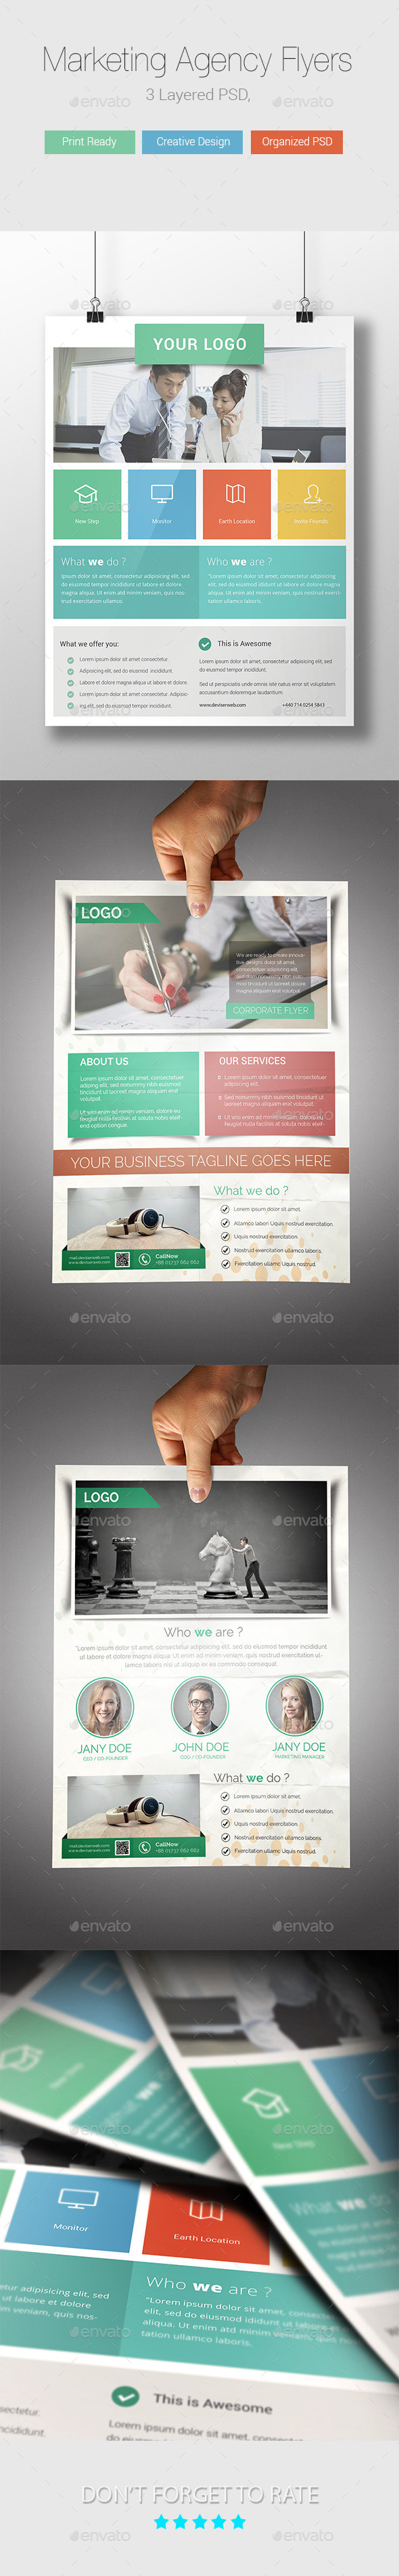 Marketing Agency Flyer Templates - Corporate Flyers